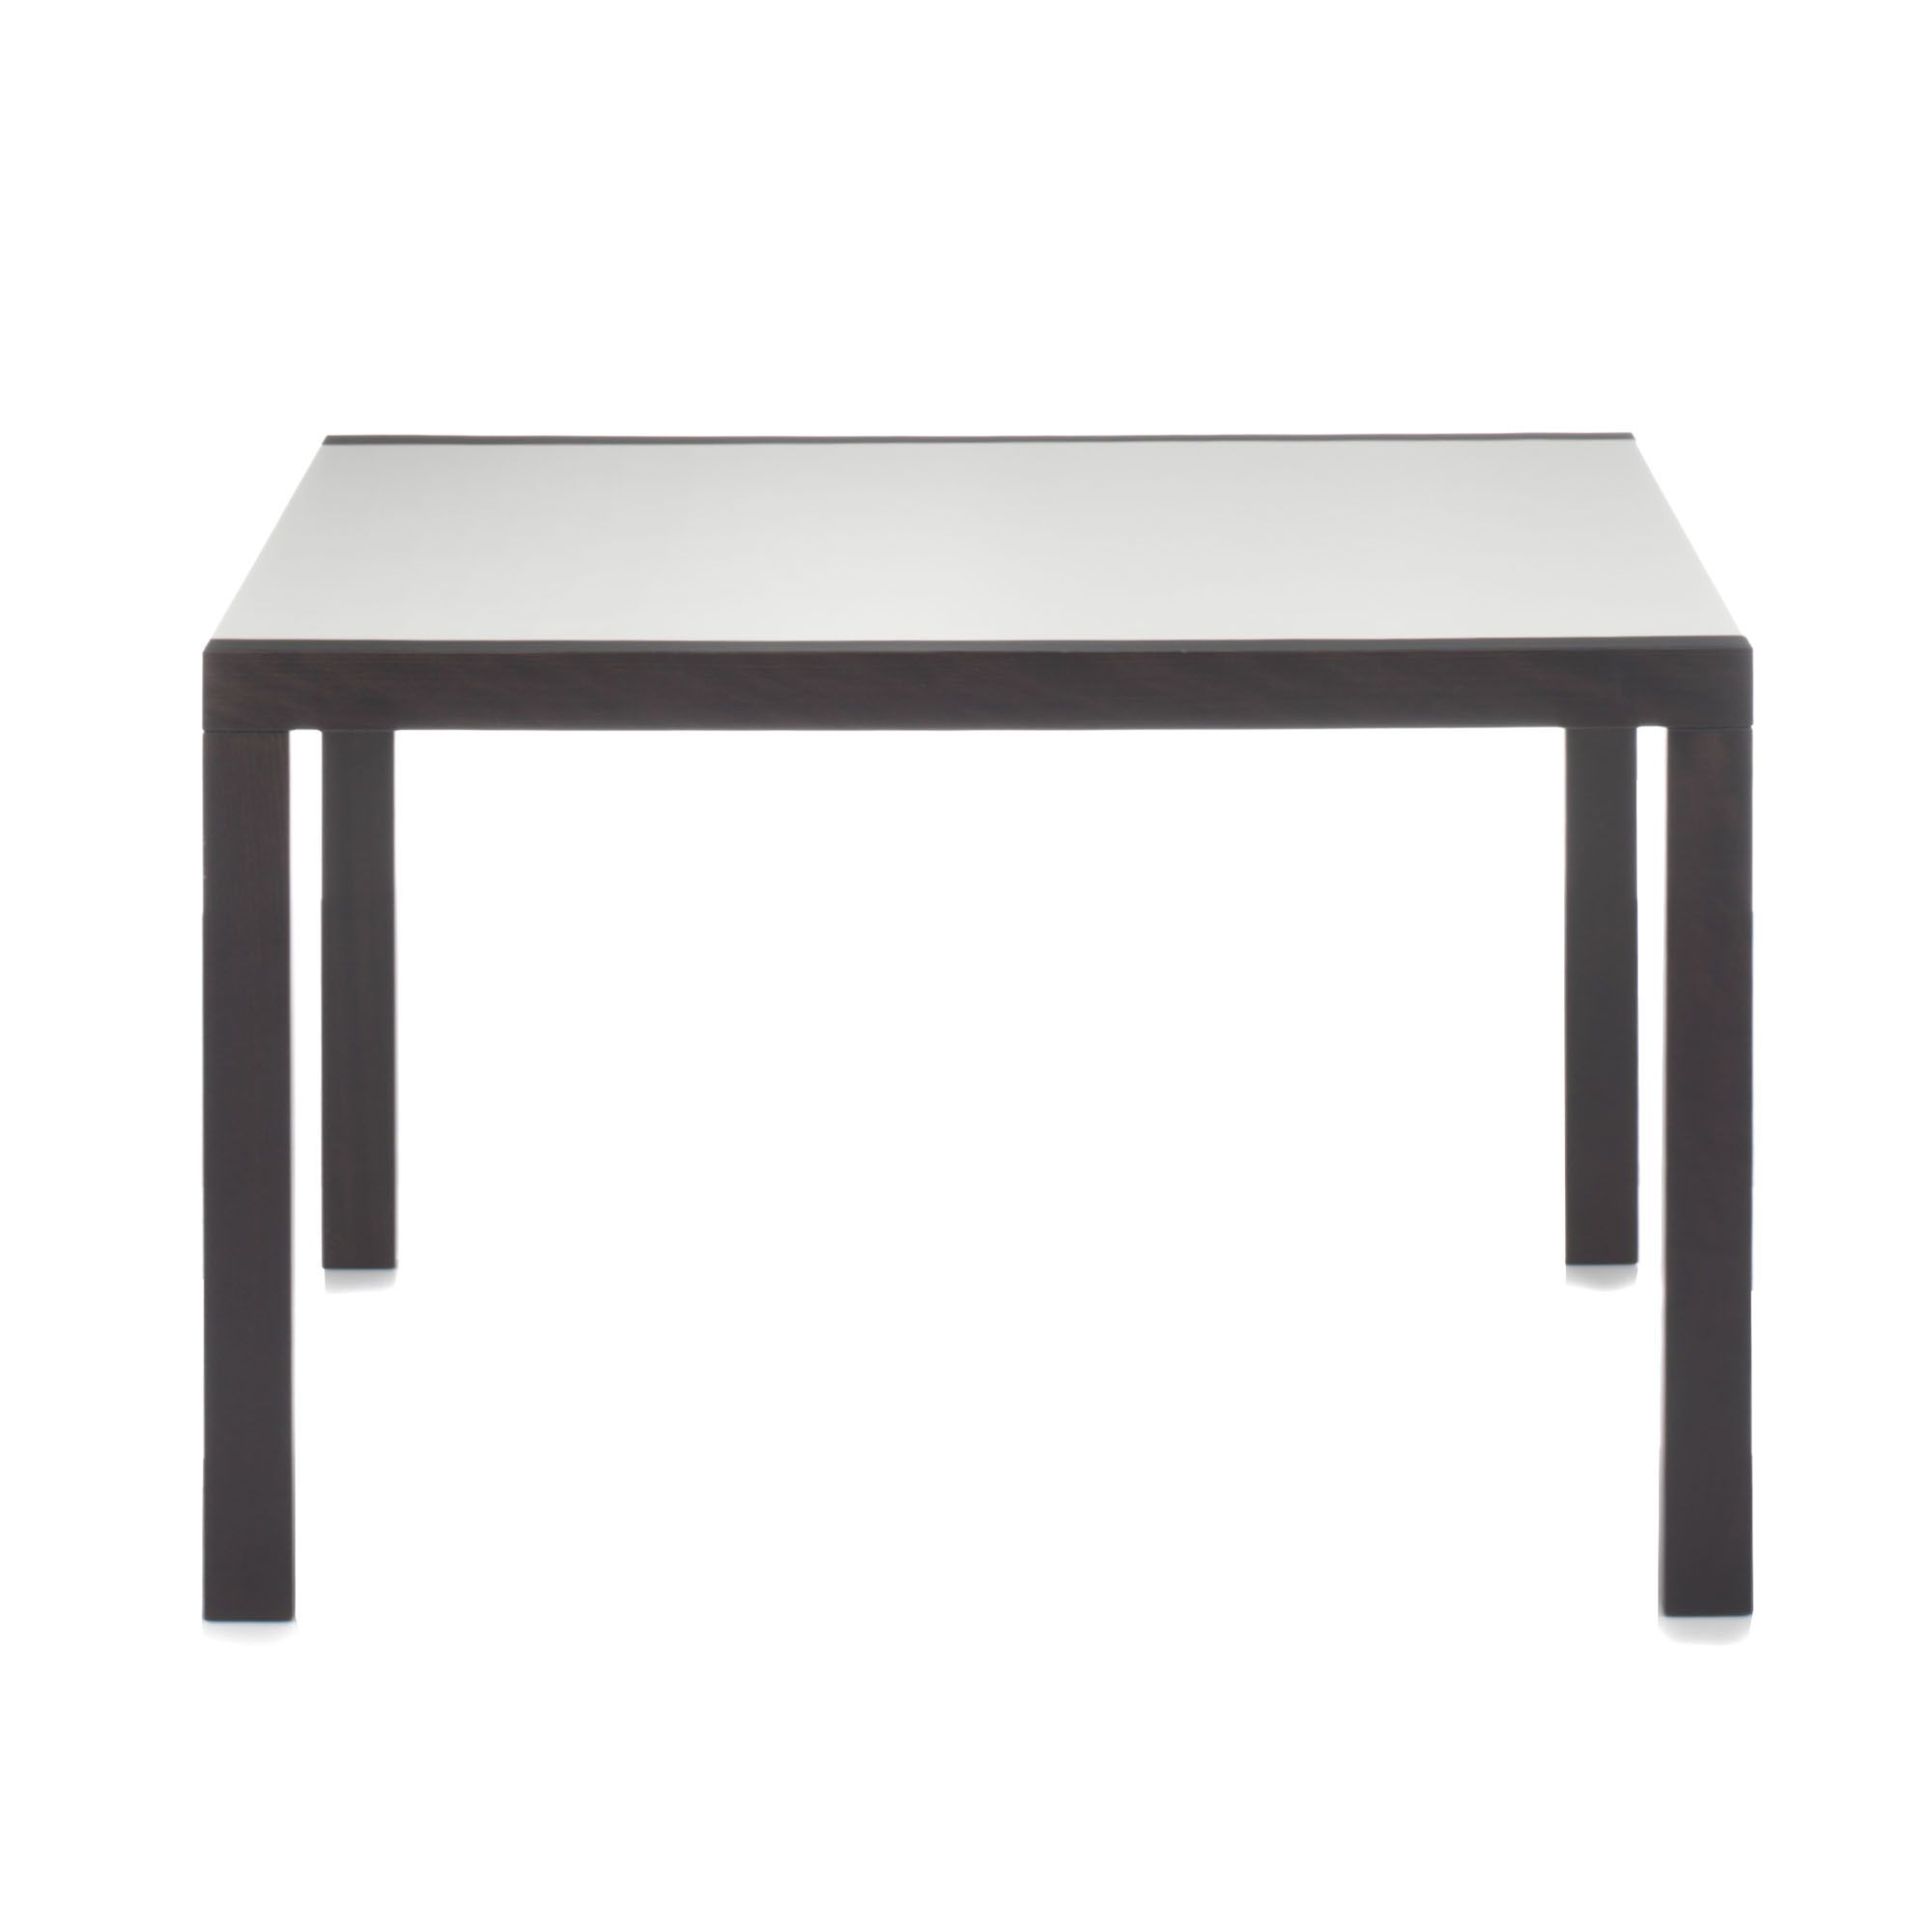 Table De Salle A Manger 15 Couverts Of Table Rectangulaire Extensible De 4 8 Couverts Bicolore